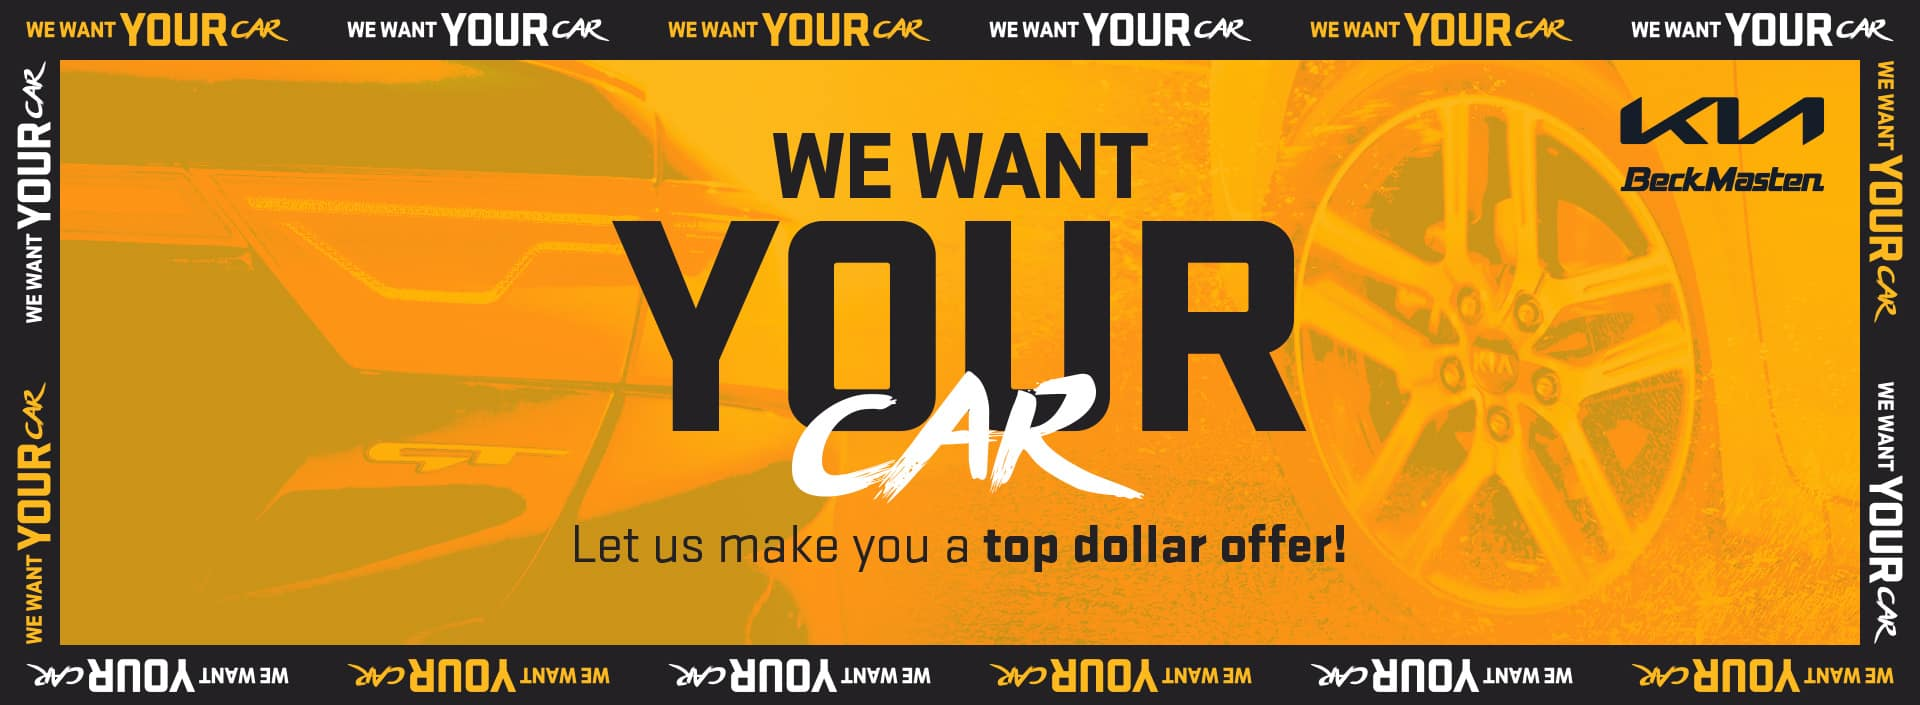 We-want-to-Buy-YOUR-Car-Banner_REV